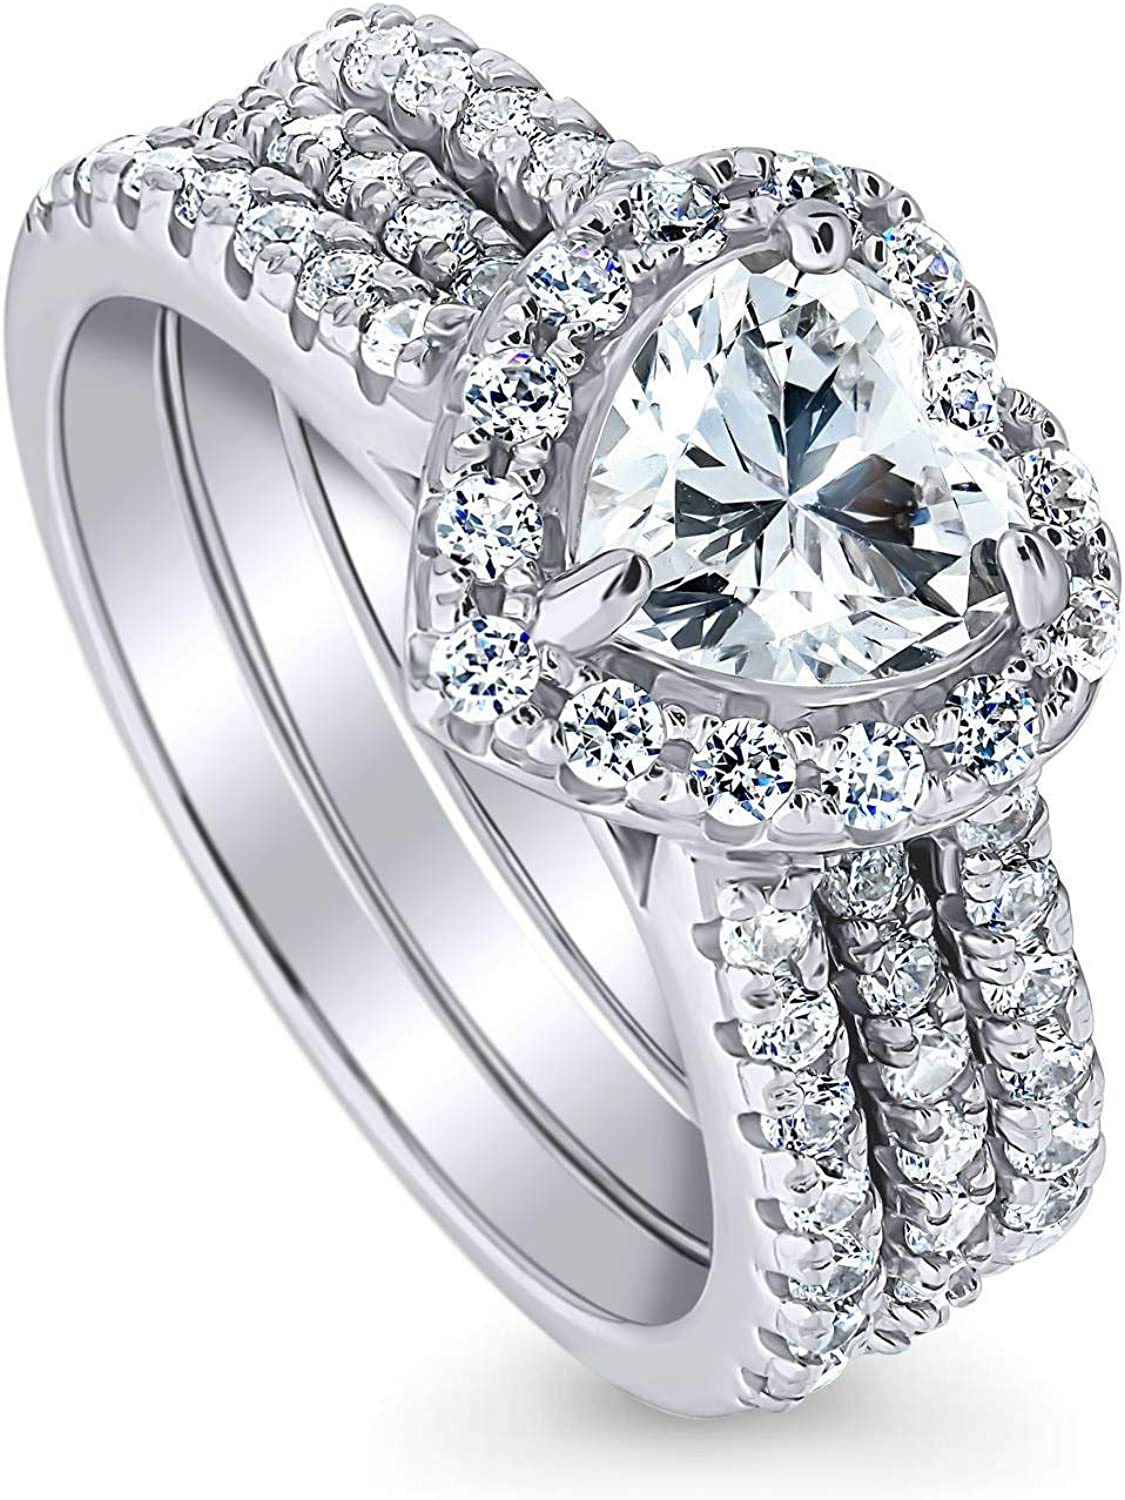 BERRICLE Rhodium Plated Sterling Silver Shaped Zirco Heart Super Sales intense SALE Cubic